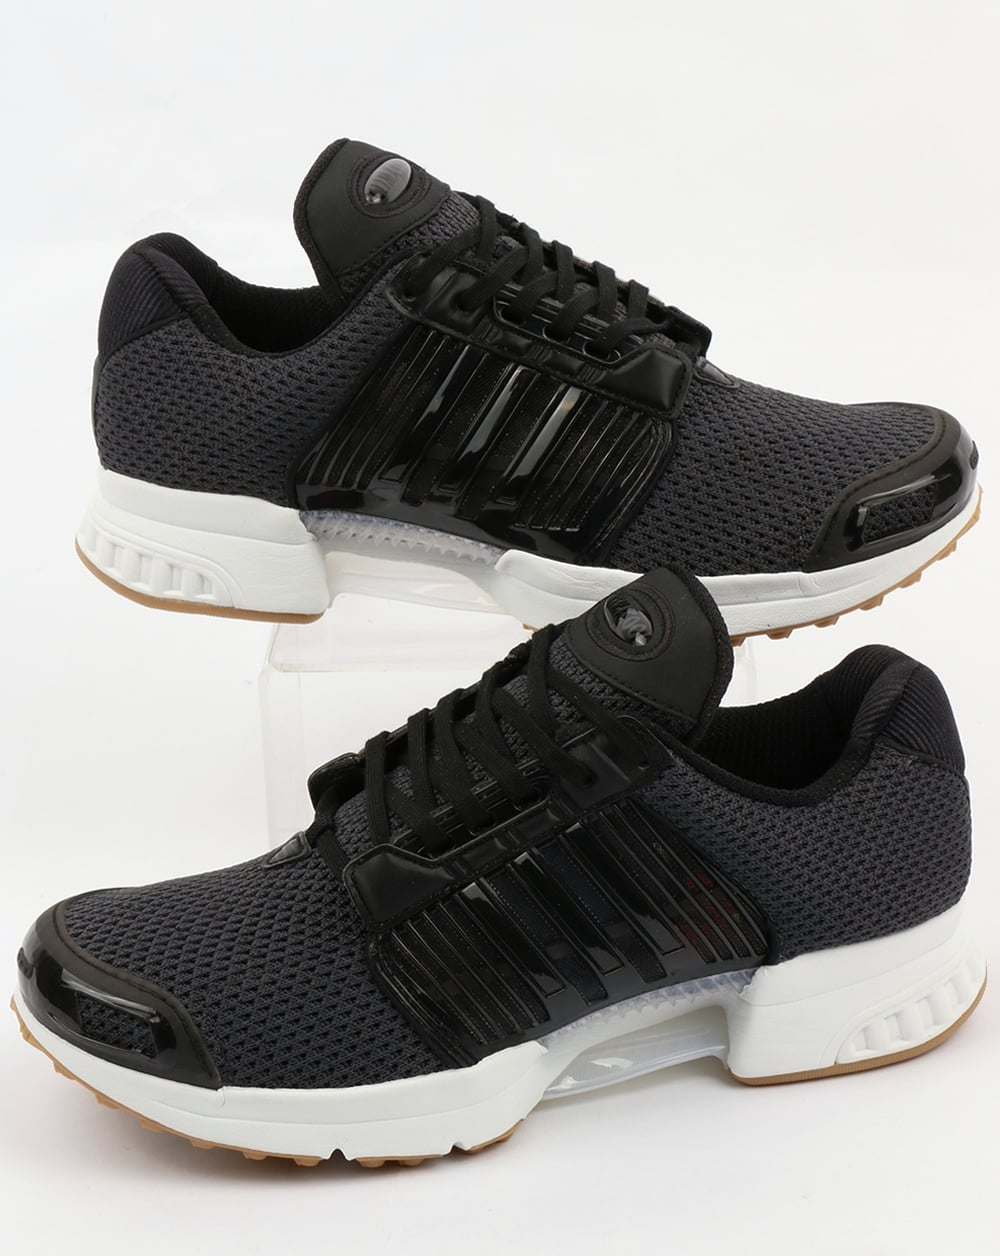 adidas Trainers Adidas Climacool 1 Trainers Copper Flat Black 7c81f2d01